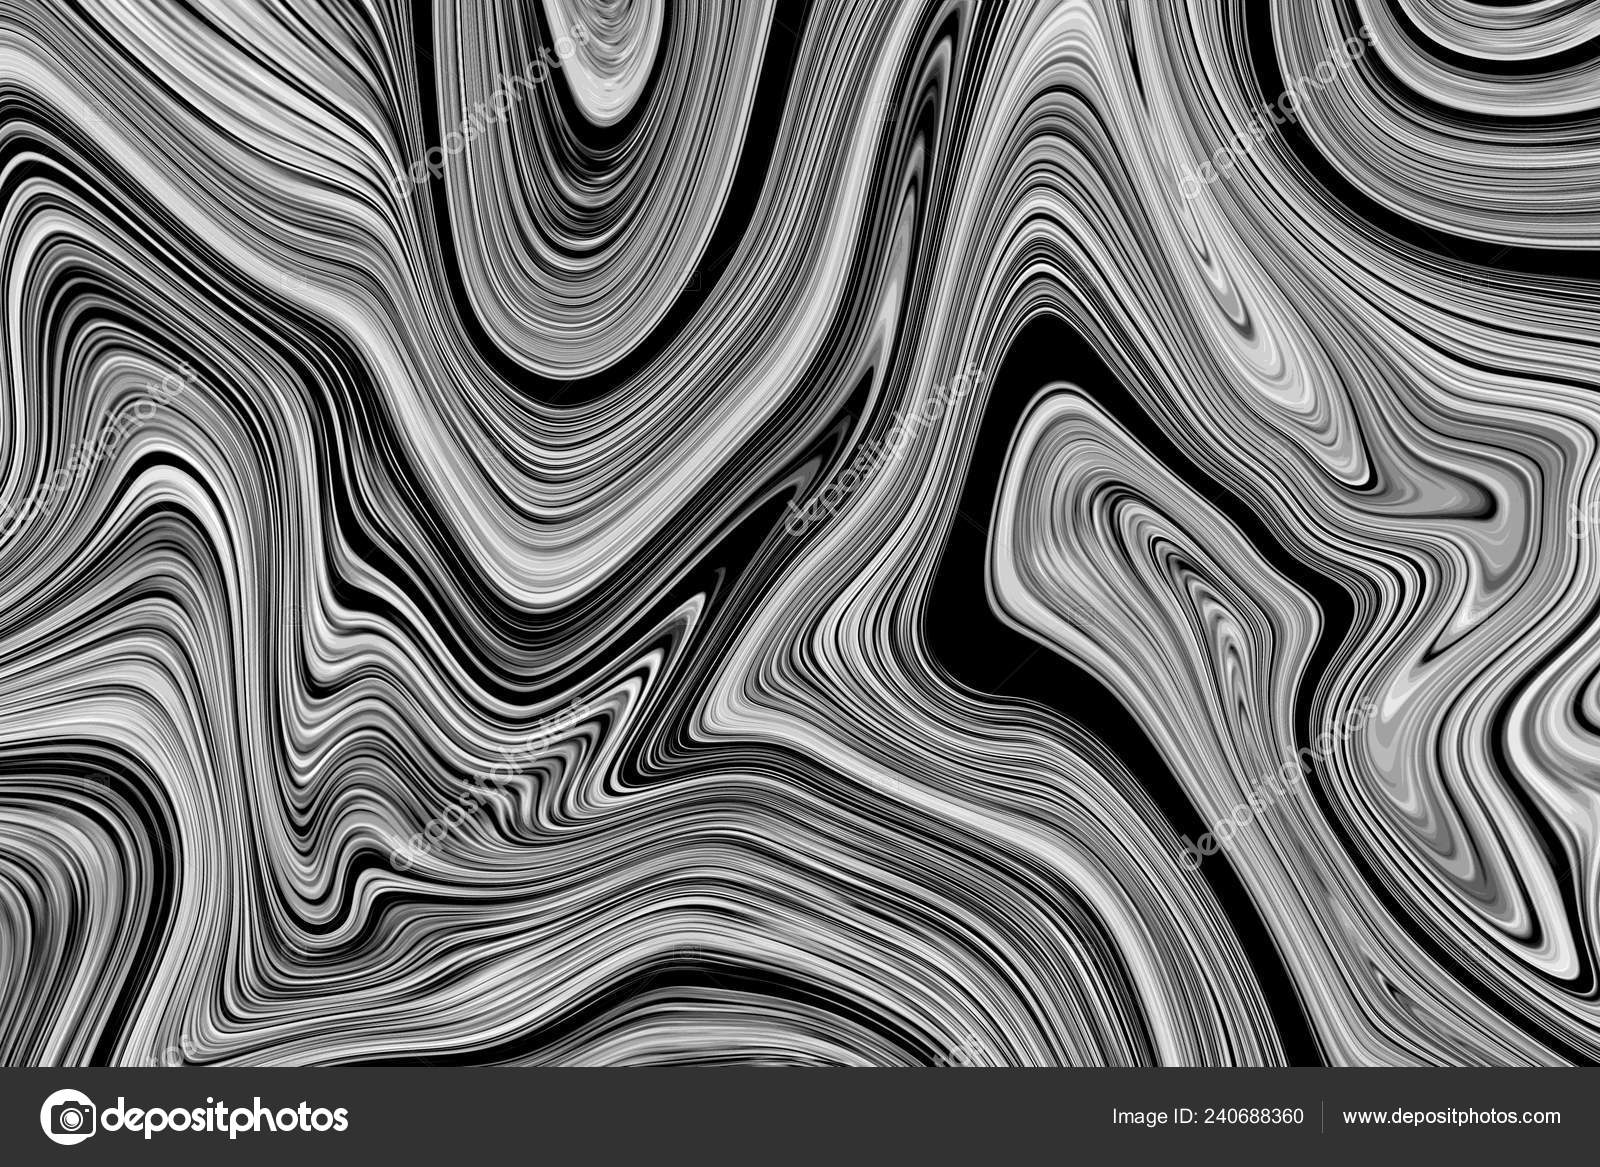 Background Black White Illustration Marble Beautiful Background Wallpaper Template Pattern Stock Photo C Pakhomava Gmail Com 240688360